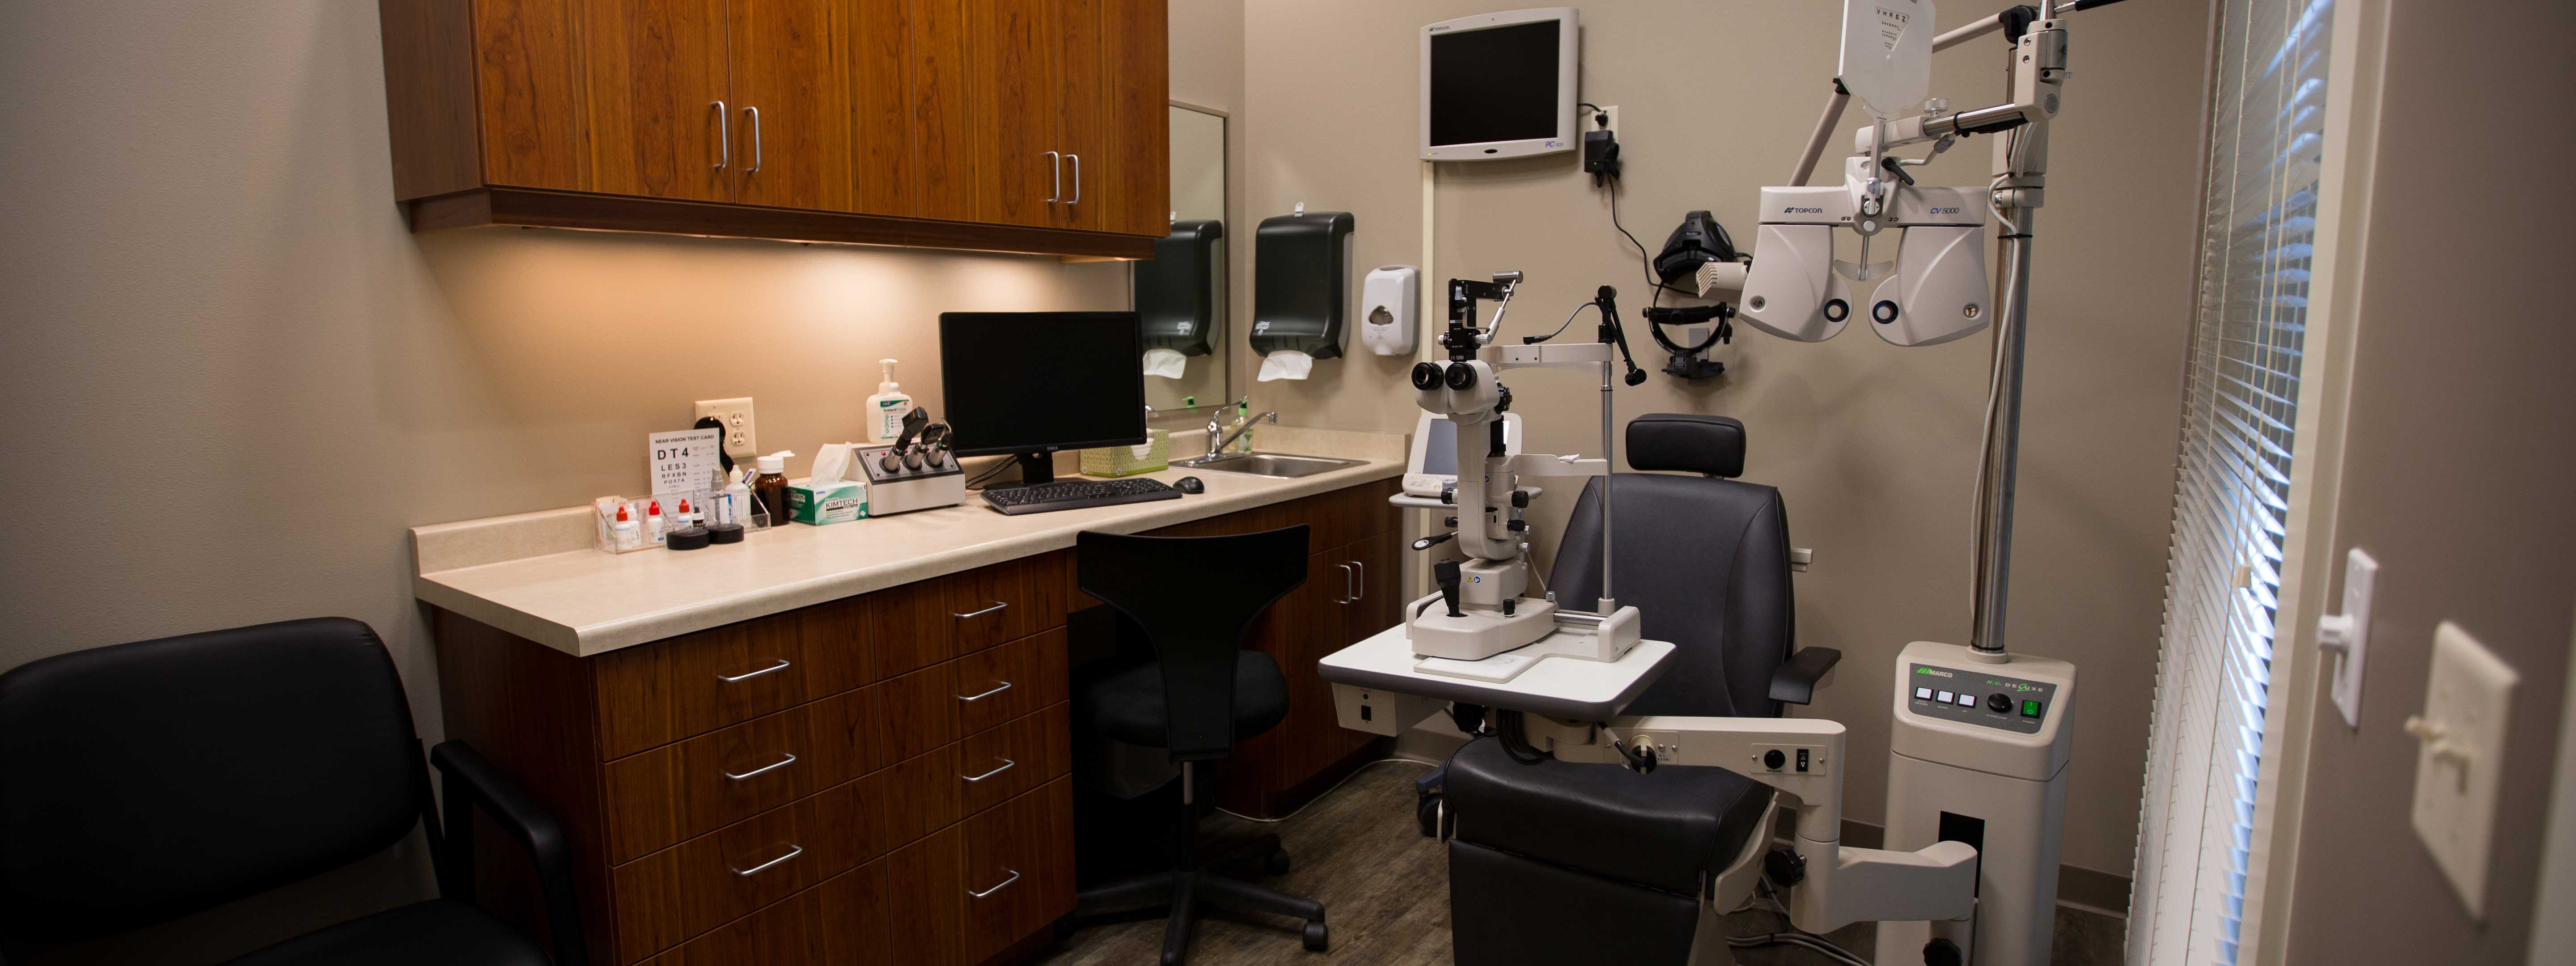 Wright-vision-care-eyecare-clinic